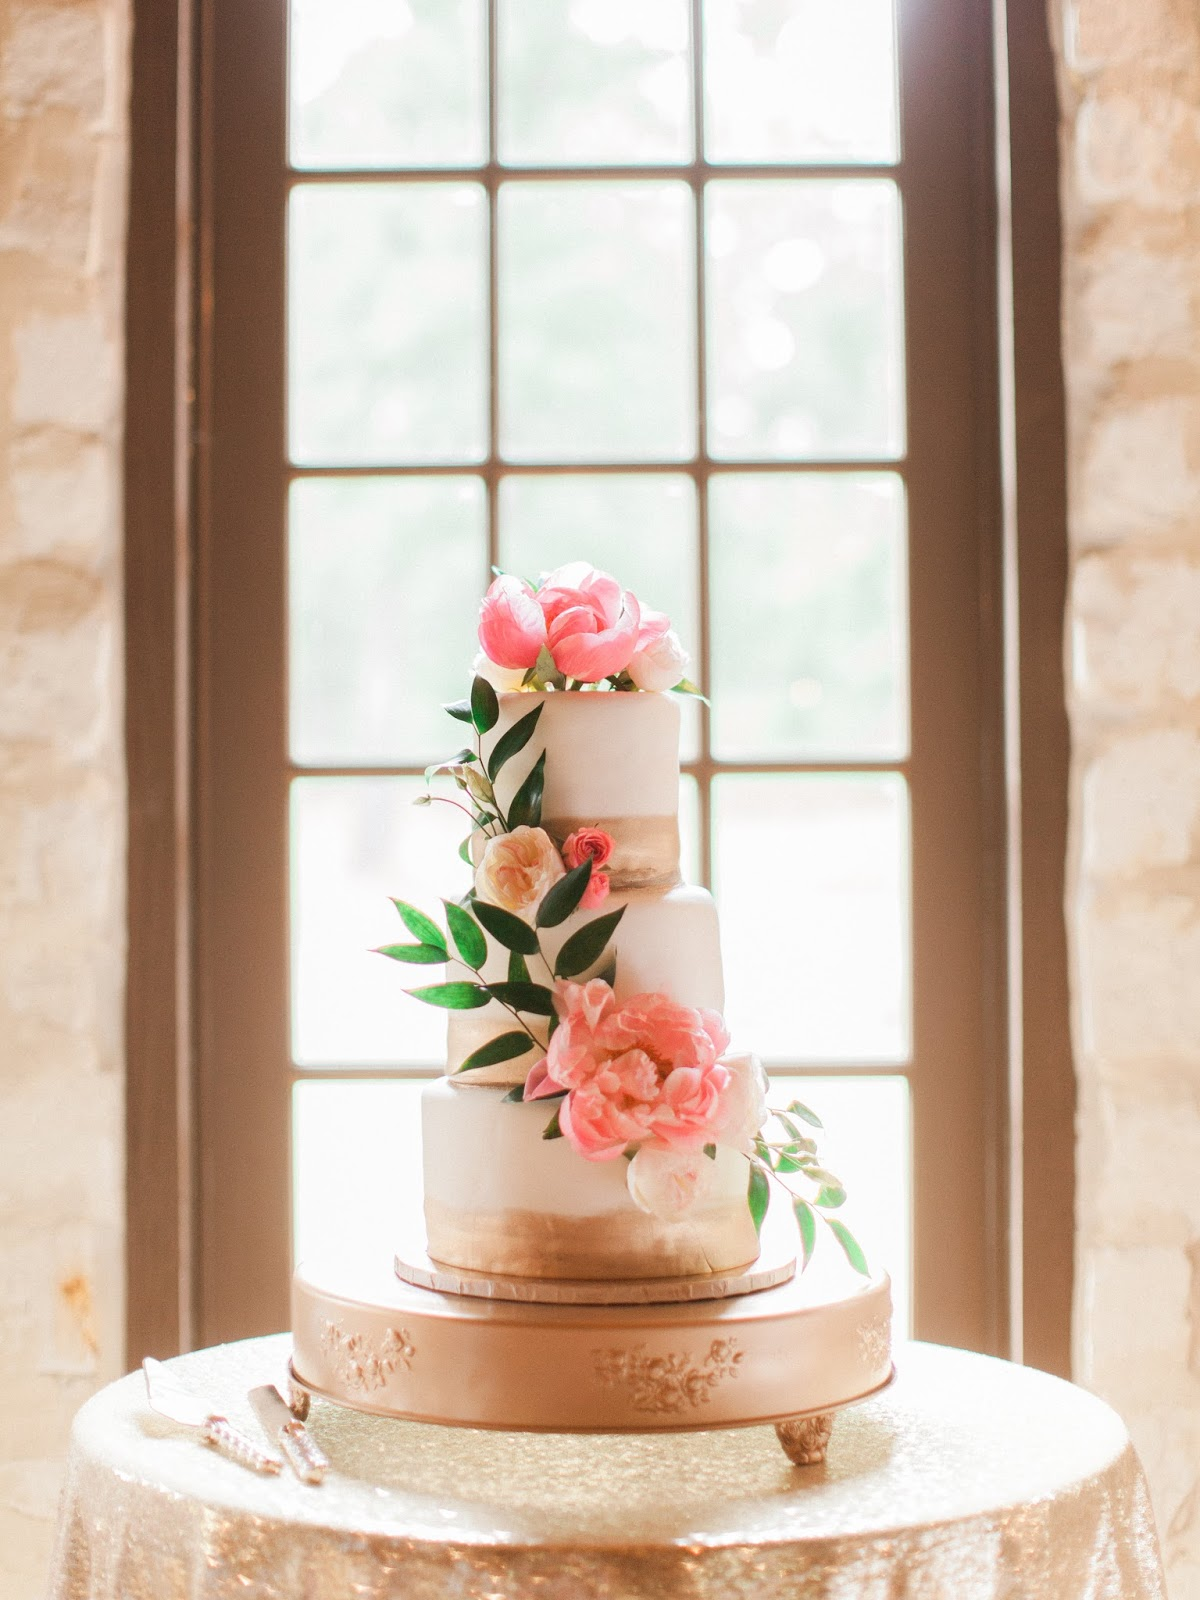 Planning Your Daughter\'s Wedding: The Cake - Quite Contemporary